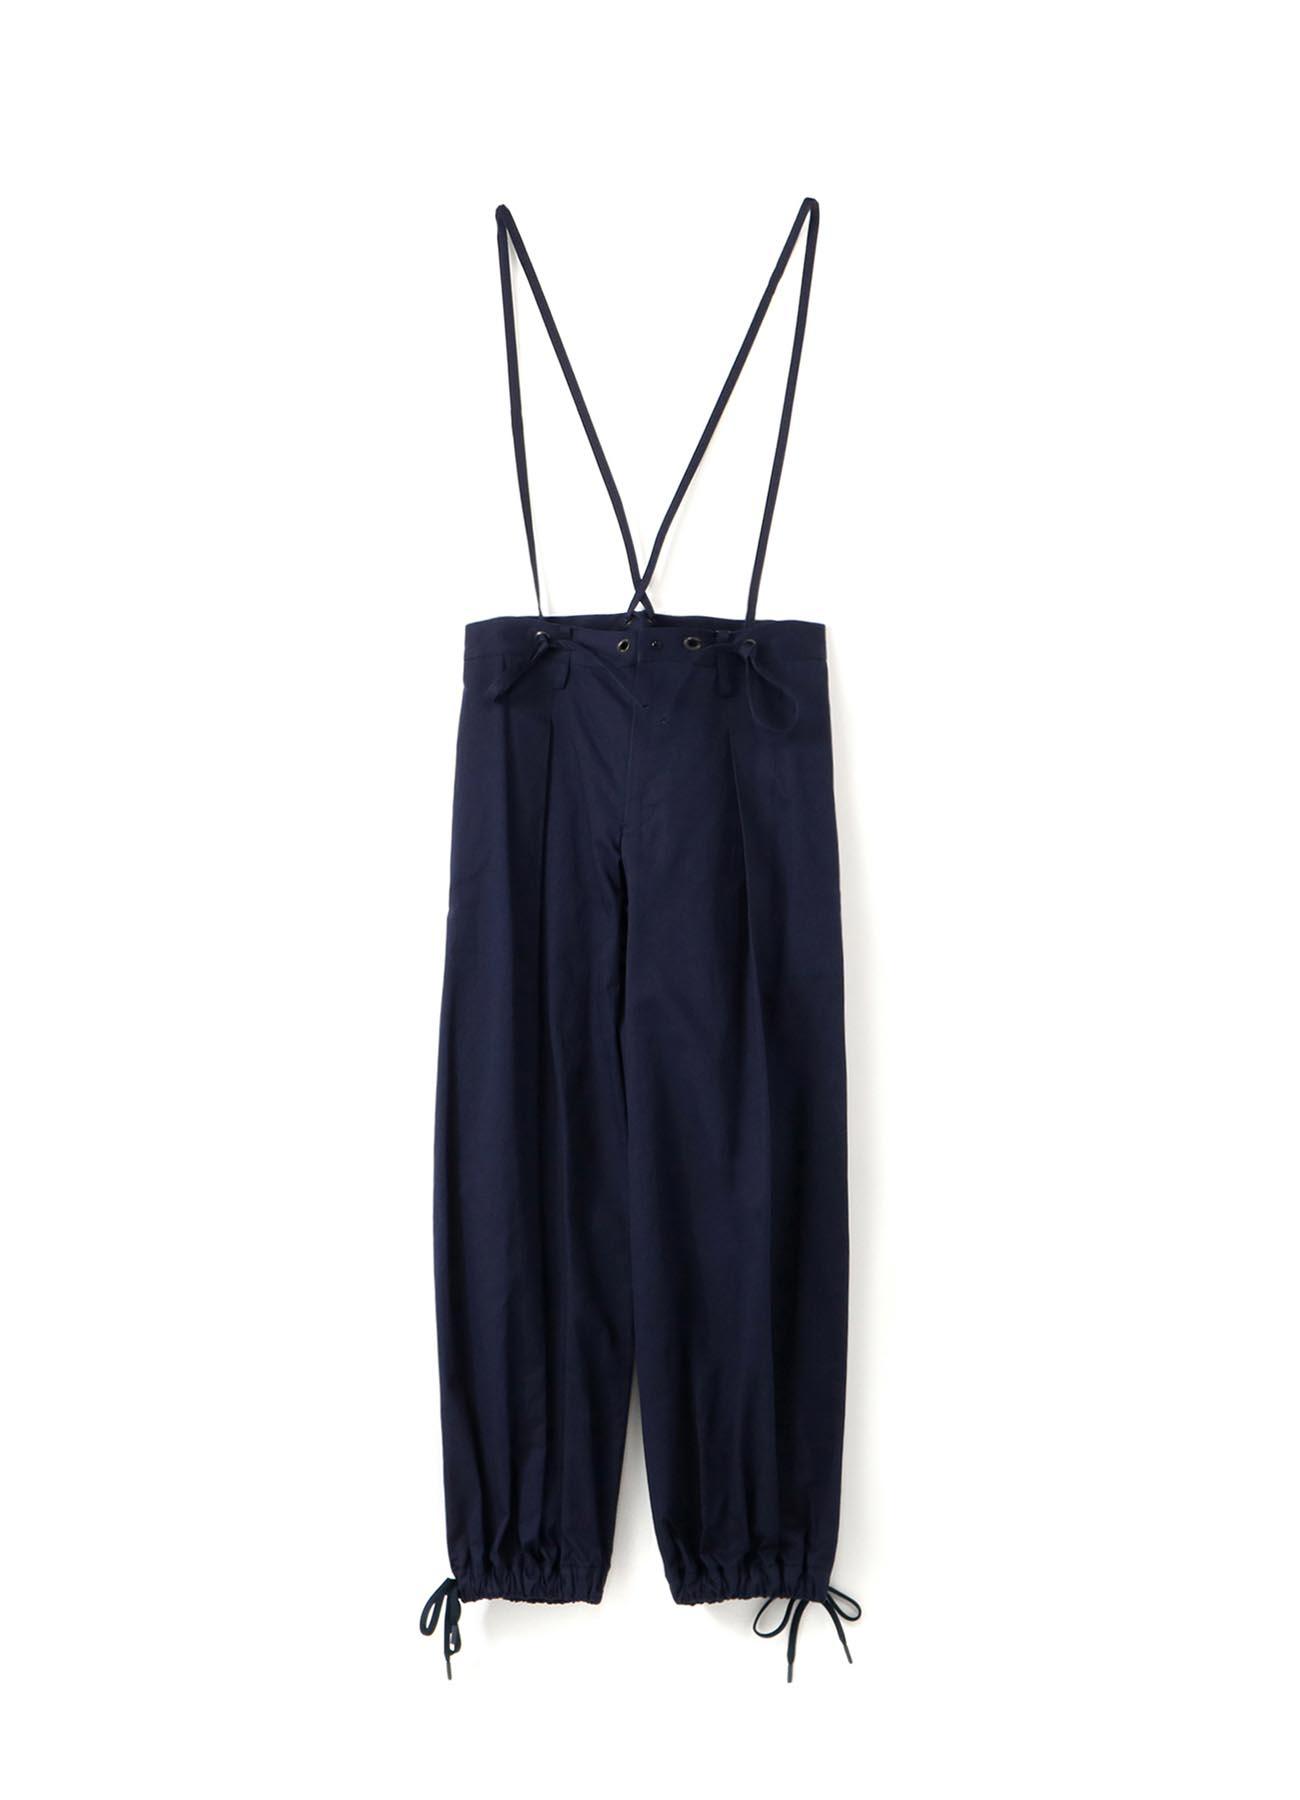 BURBERRY R-THIN SUSPENDER PNT